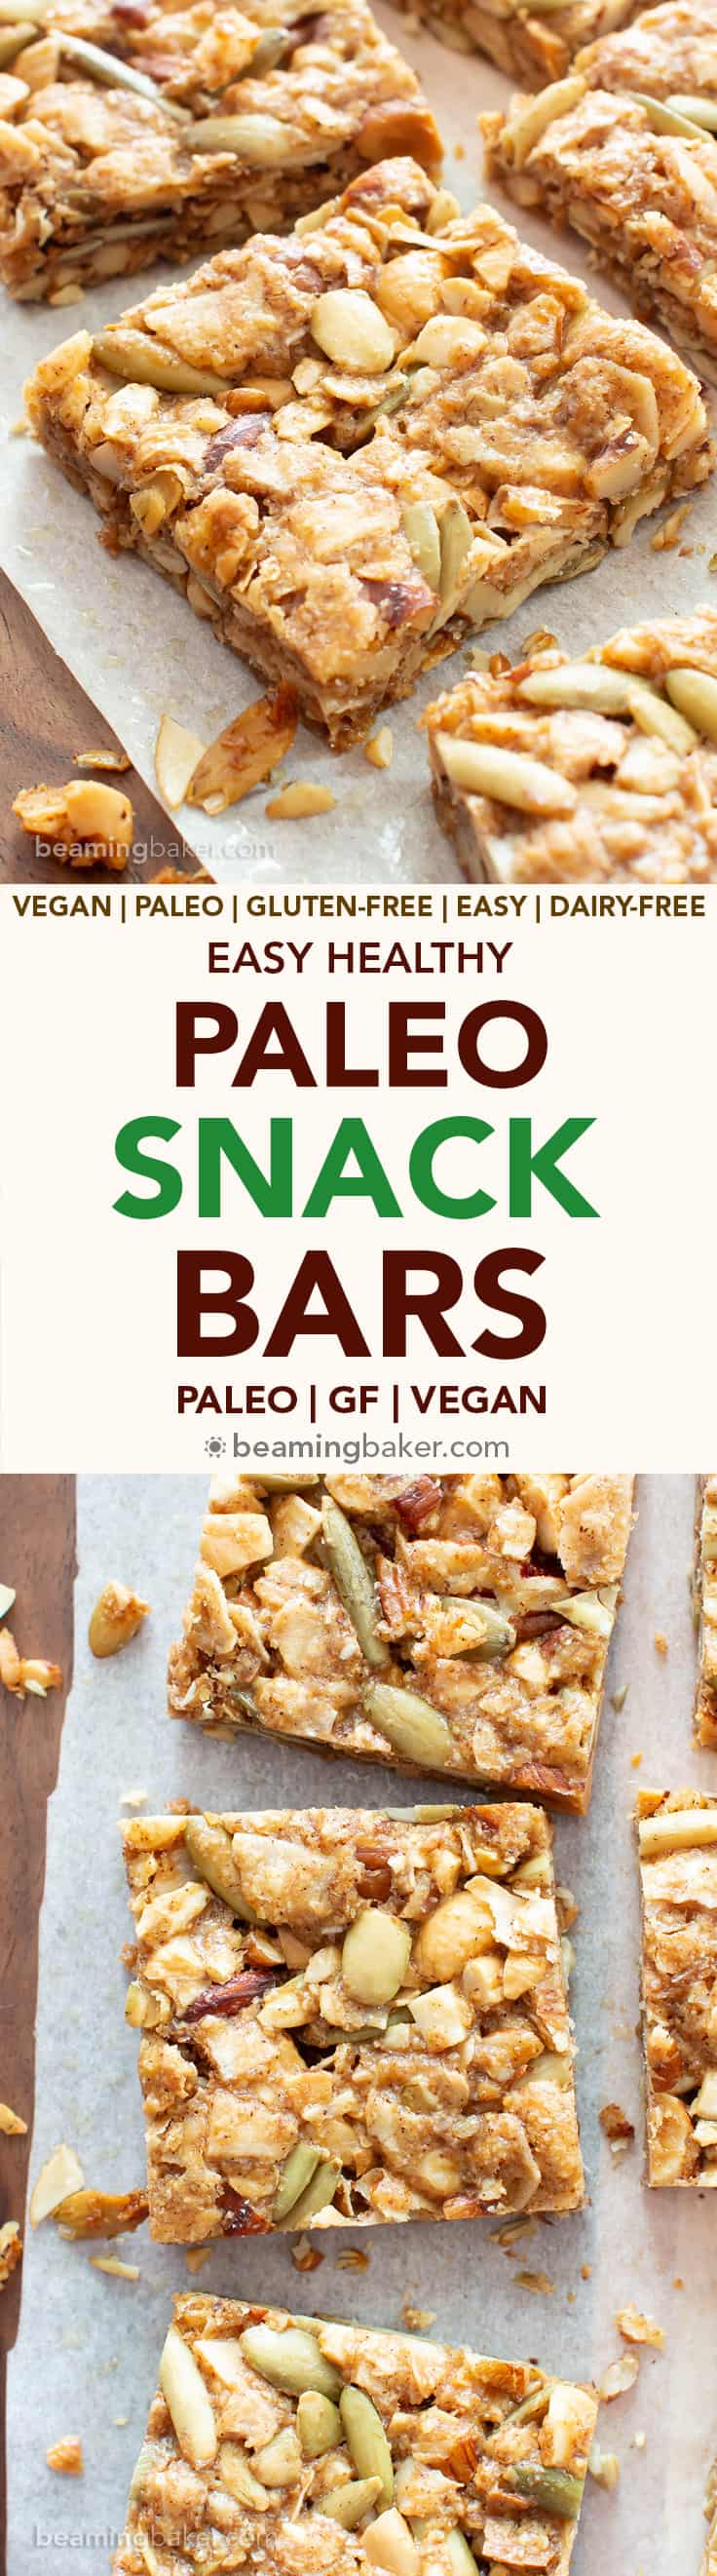 Paleo Snack Bars Recipe (GF, V): super EASY paleo approved snack bars, packed with nuts & seeds! The ultimate paleo diet snack bars—chewy, filling, gluten free, vegan & healthy! #Paleo #Snacks #GlutenFree #Vegan | Recipe at BeamingBaker.com